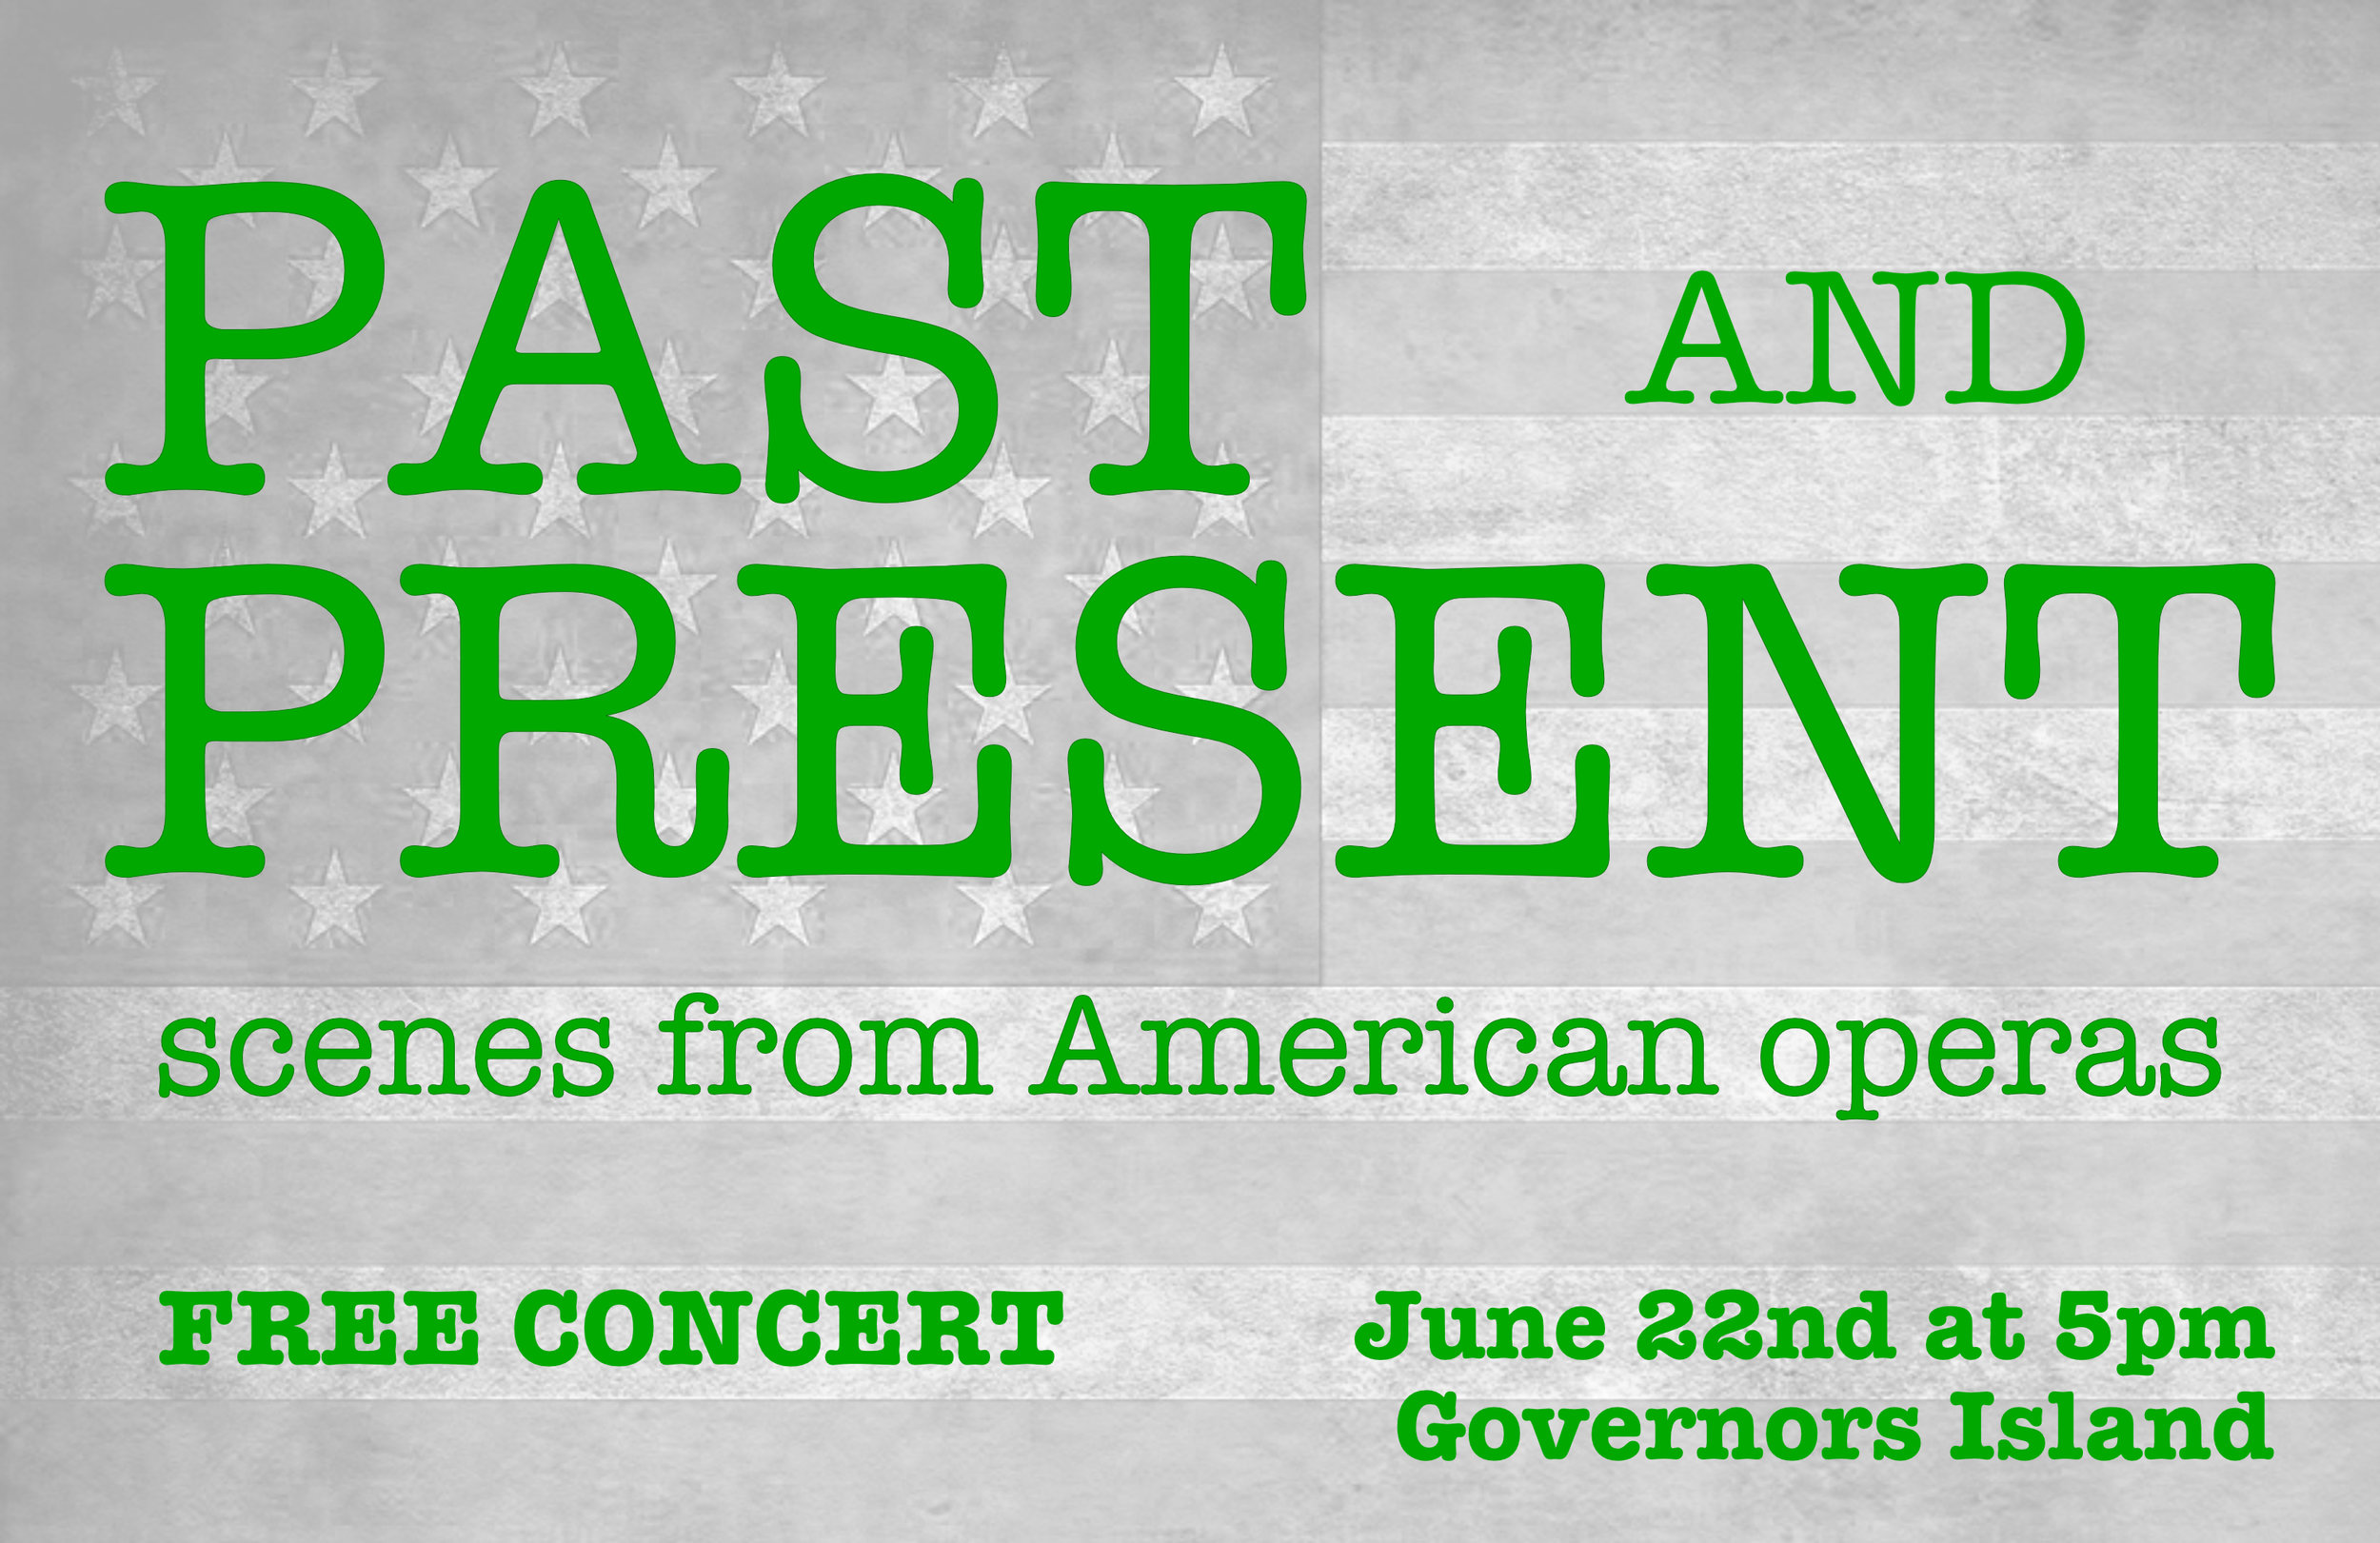 Past and Present - Scenes from American operasJune 22nd, 2019Nolan Park, Governors Island